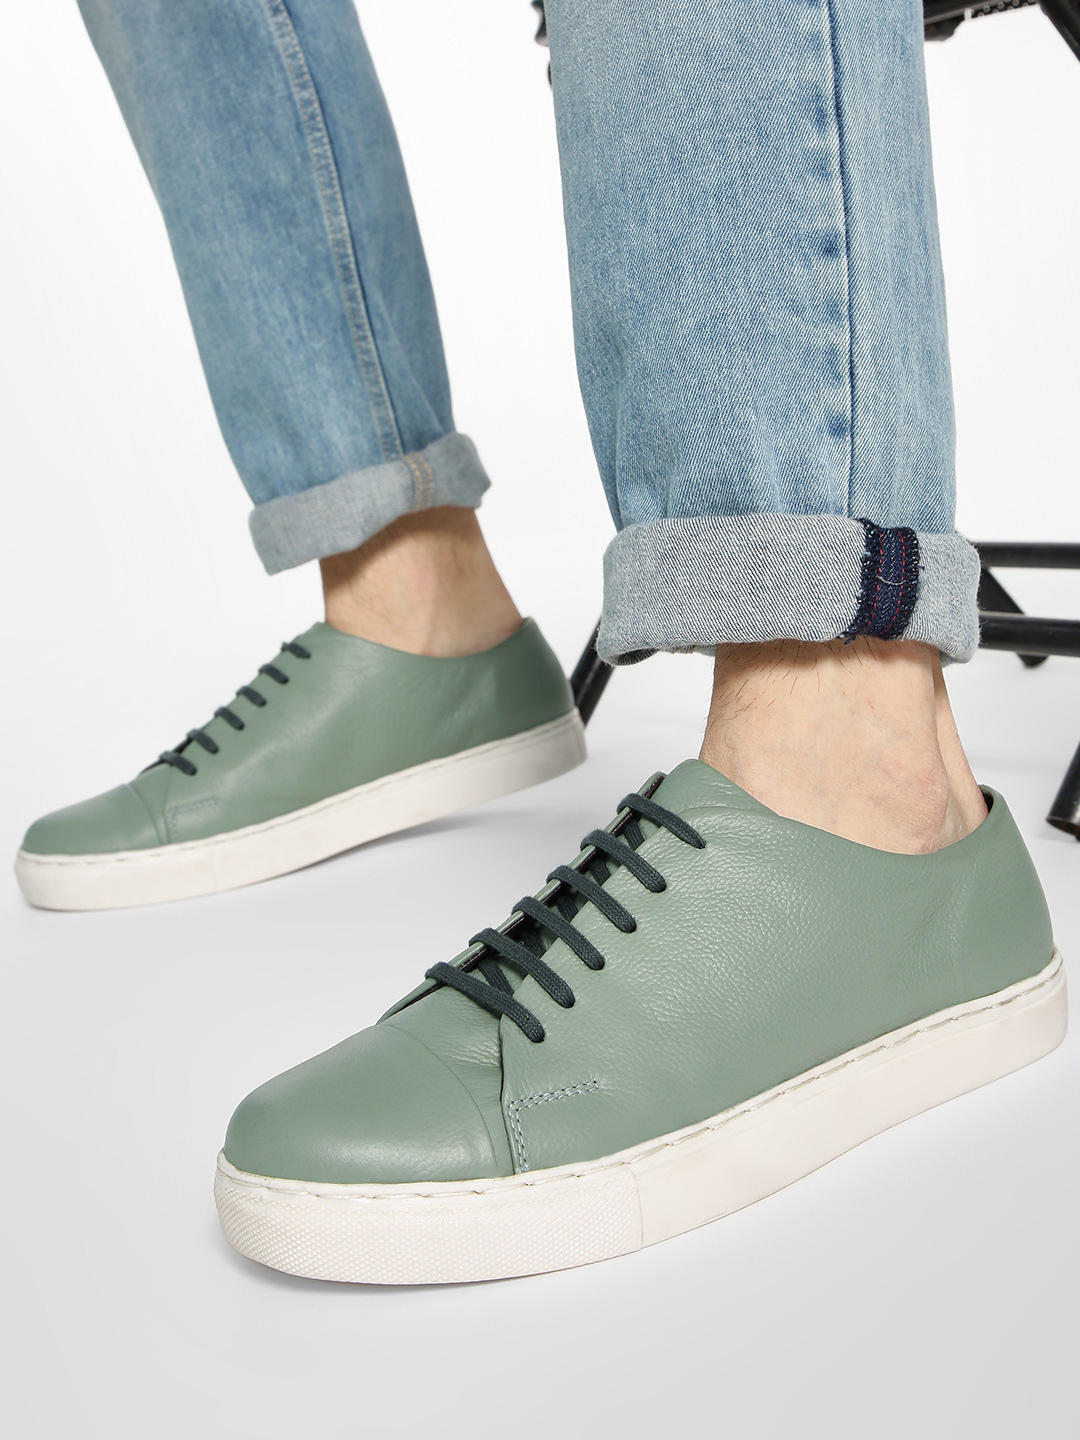 YOHO Green Basic Lace-Up Leather Sneakers 1